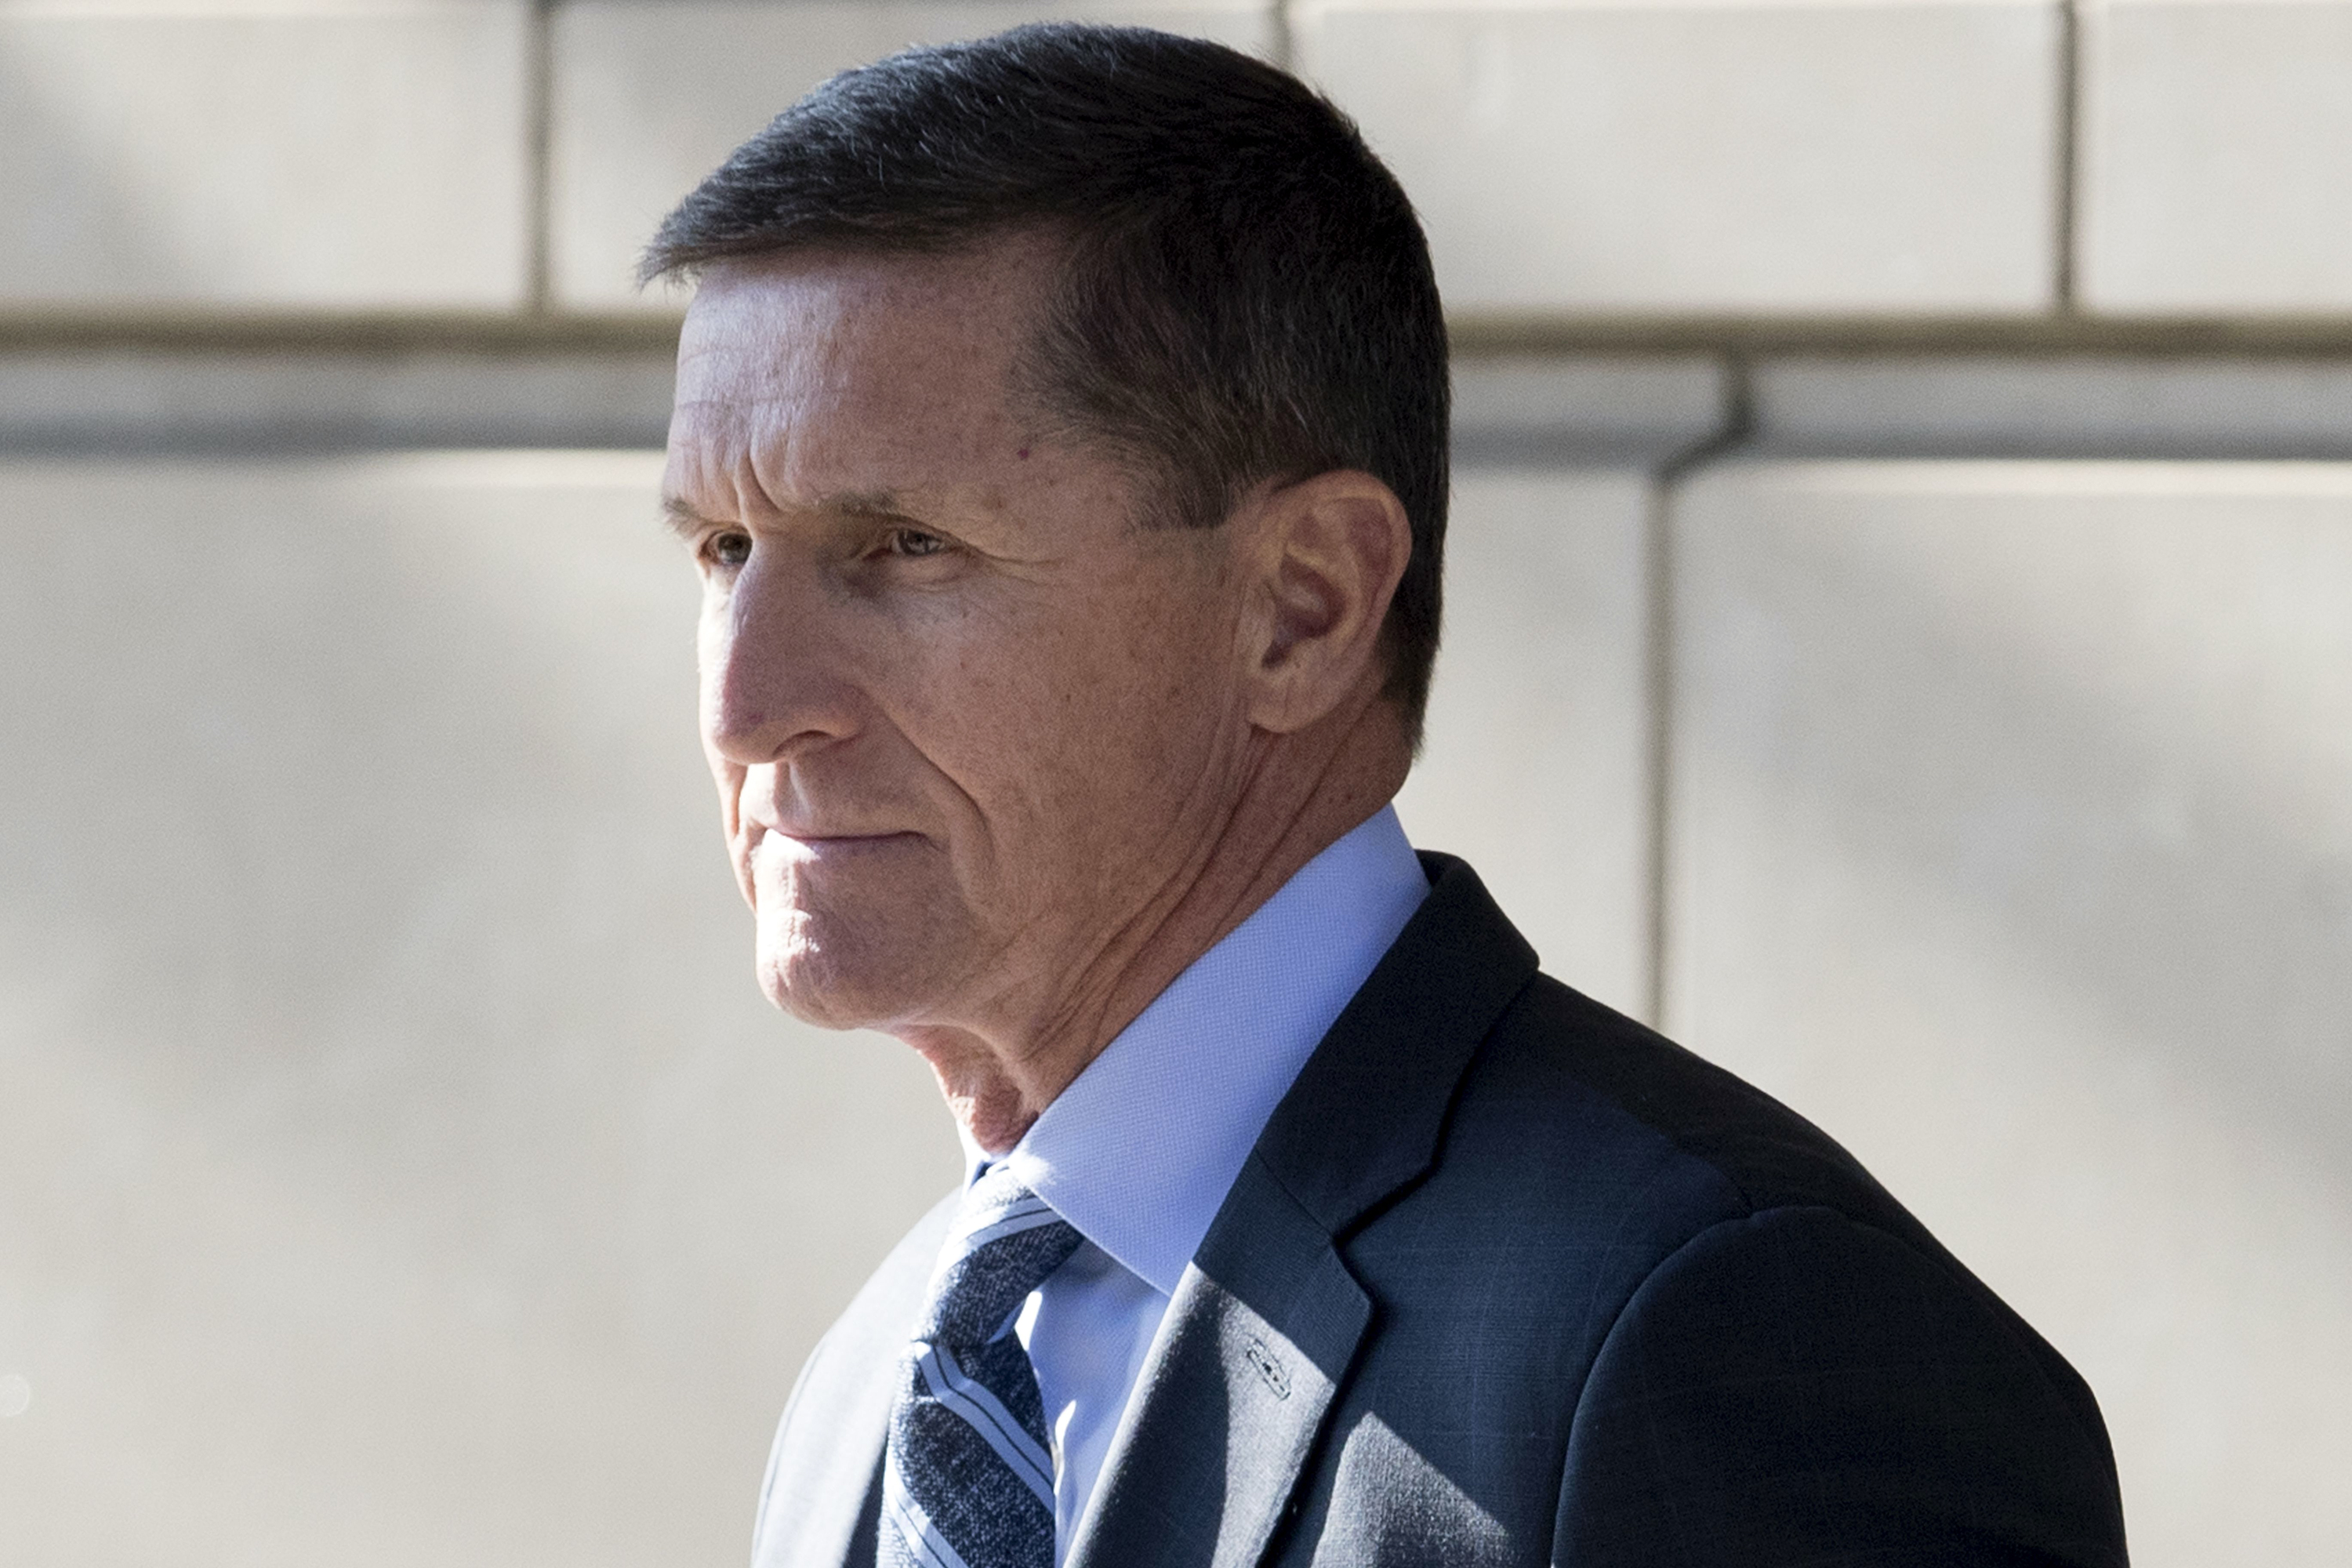 Mueller: Michael Flynn Should Go to Jail for Lying